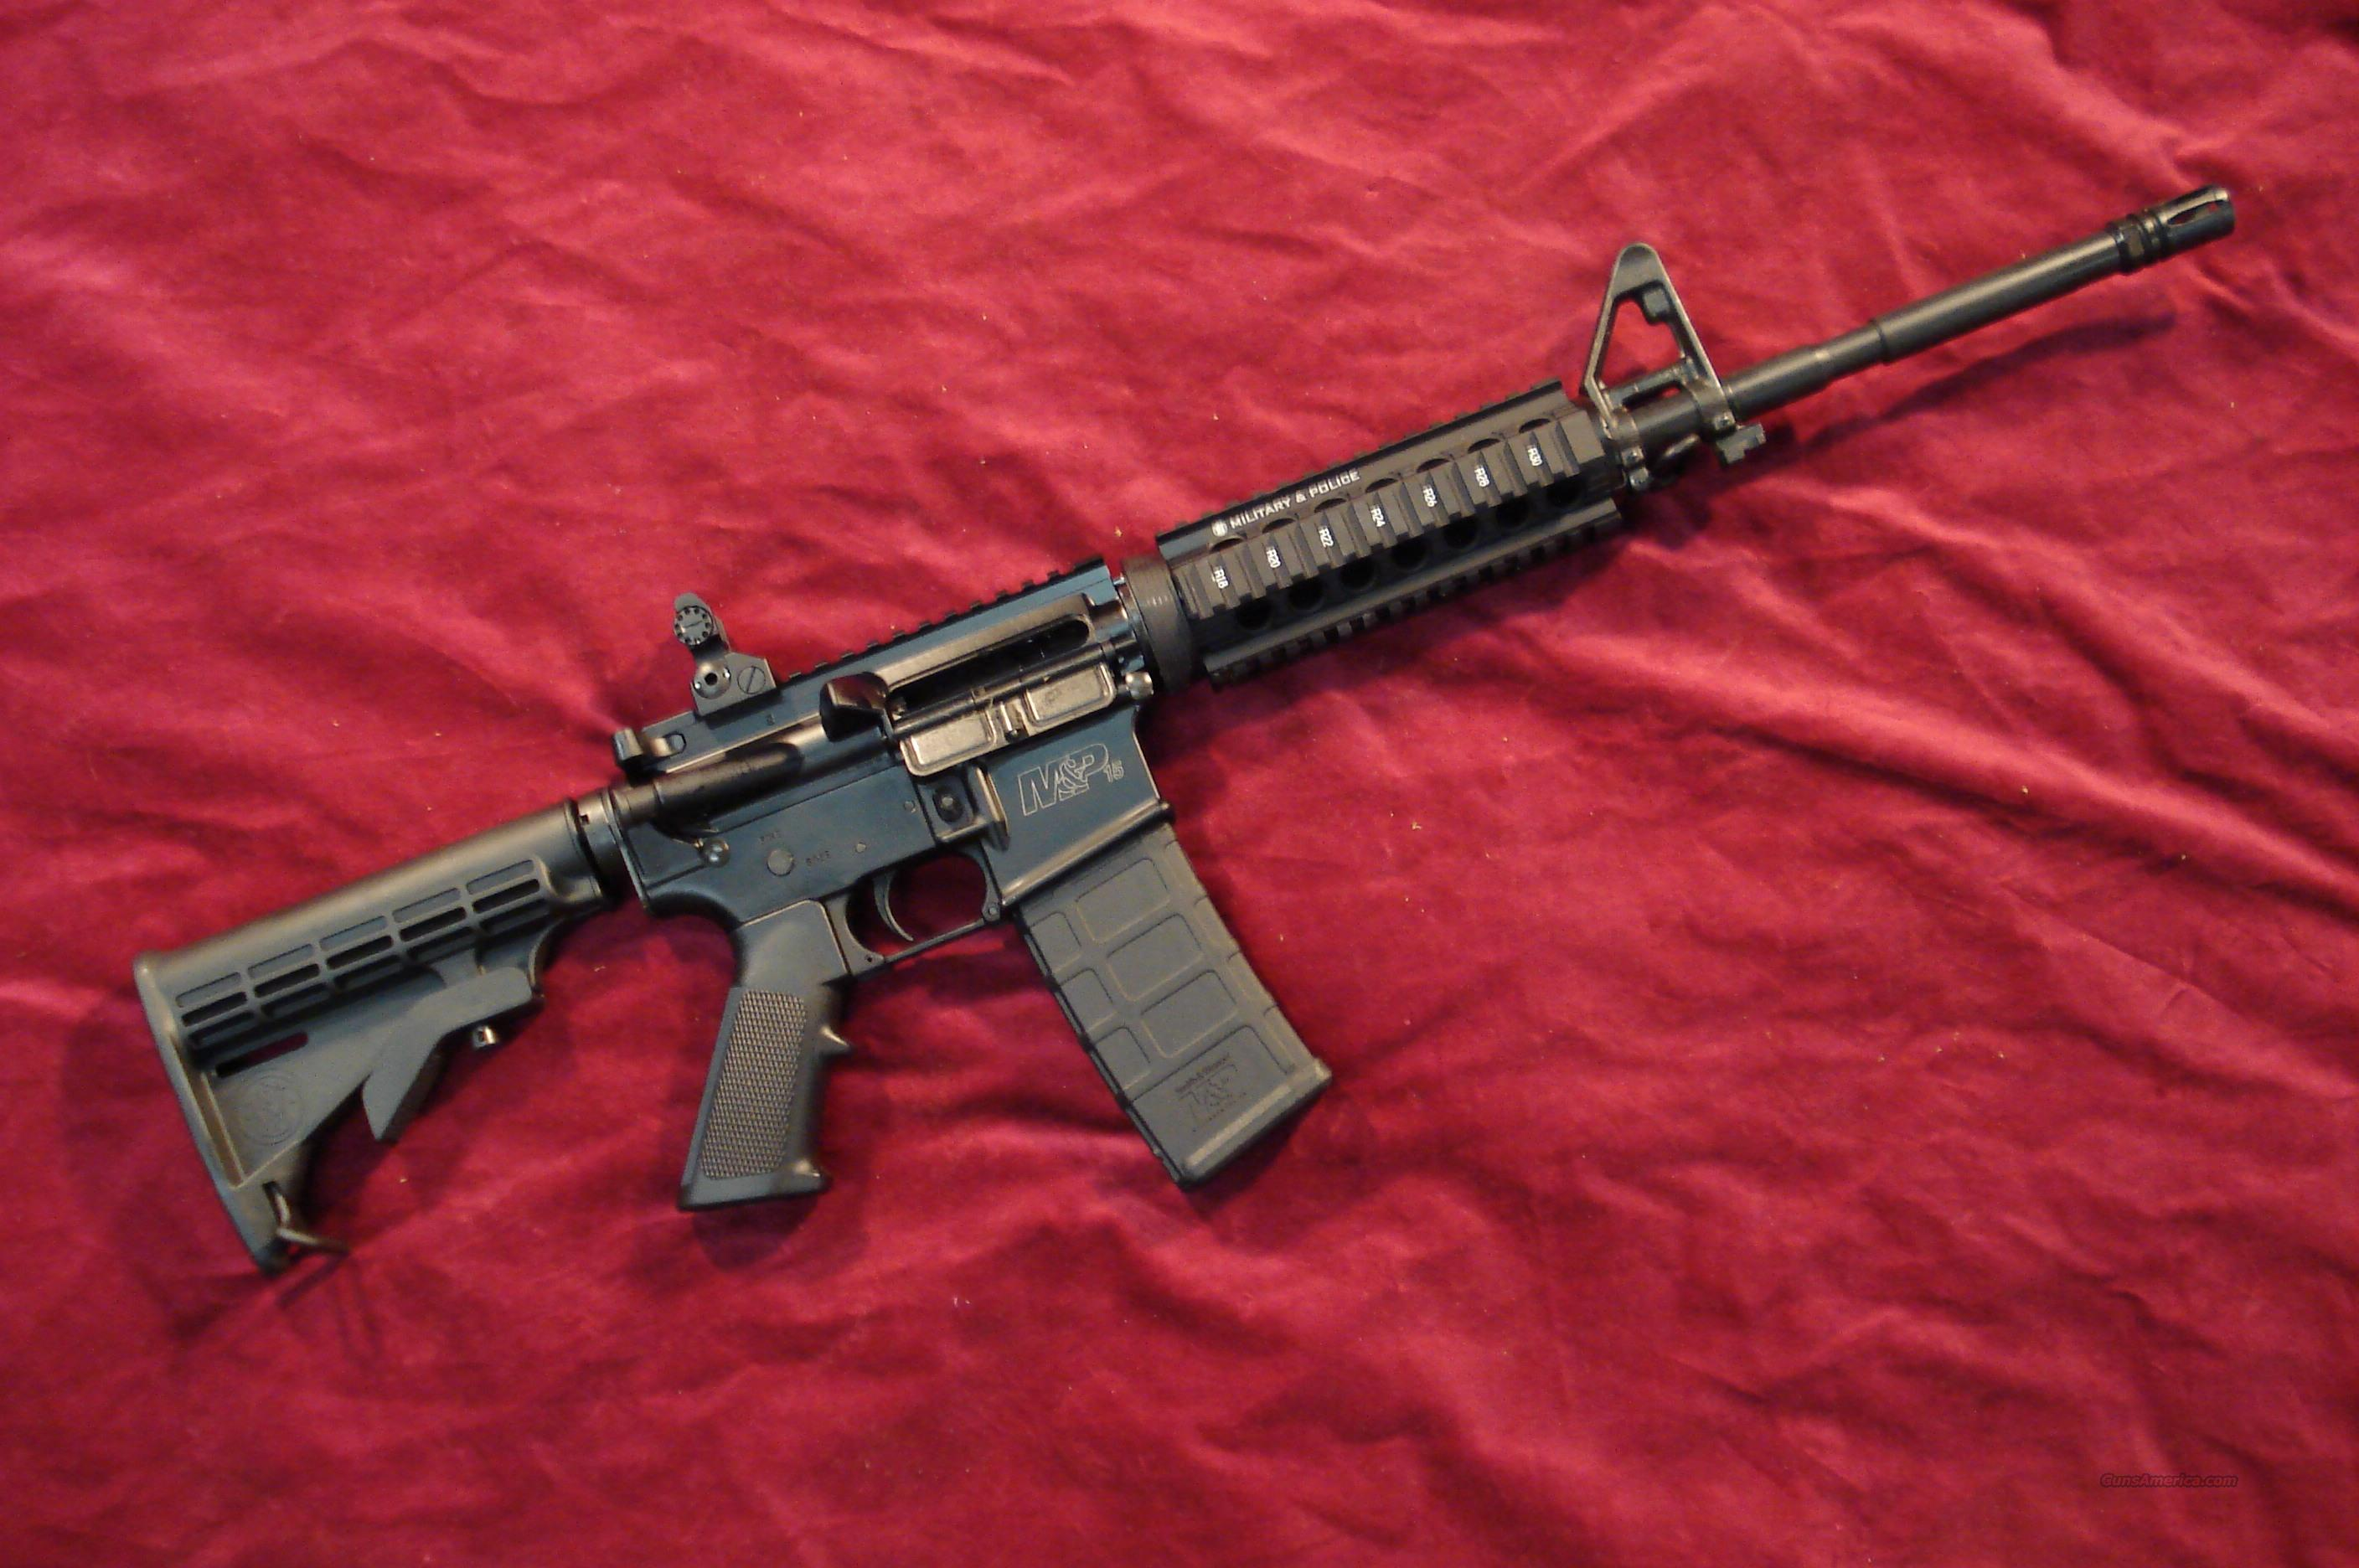 SMITH AND WESSON M&P 15X FLAT TOP 223CAL. W/4 RAIL TACTICAL HAND GUARD NEW    Guns > Rifles > AR-15 Rifles - Small Manufacturers > Complete Rifle